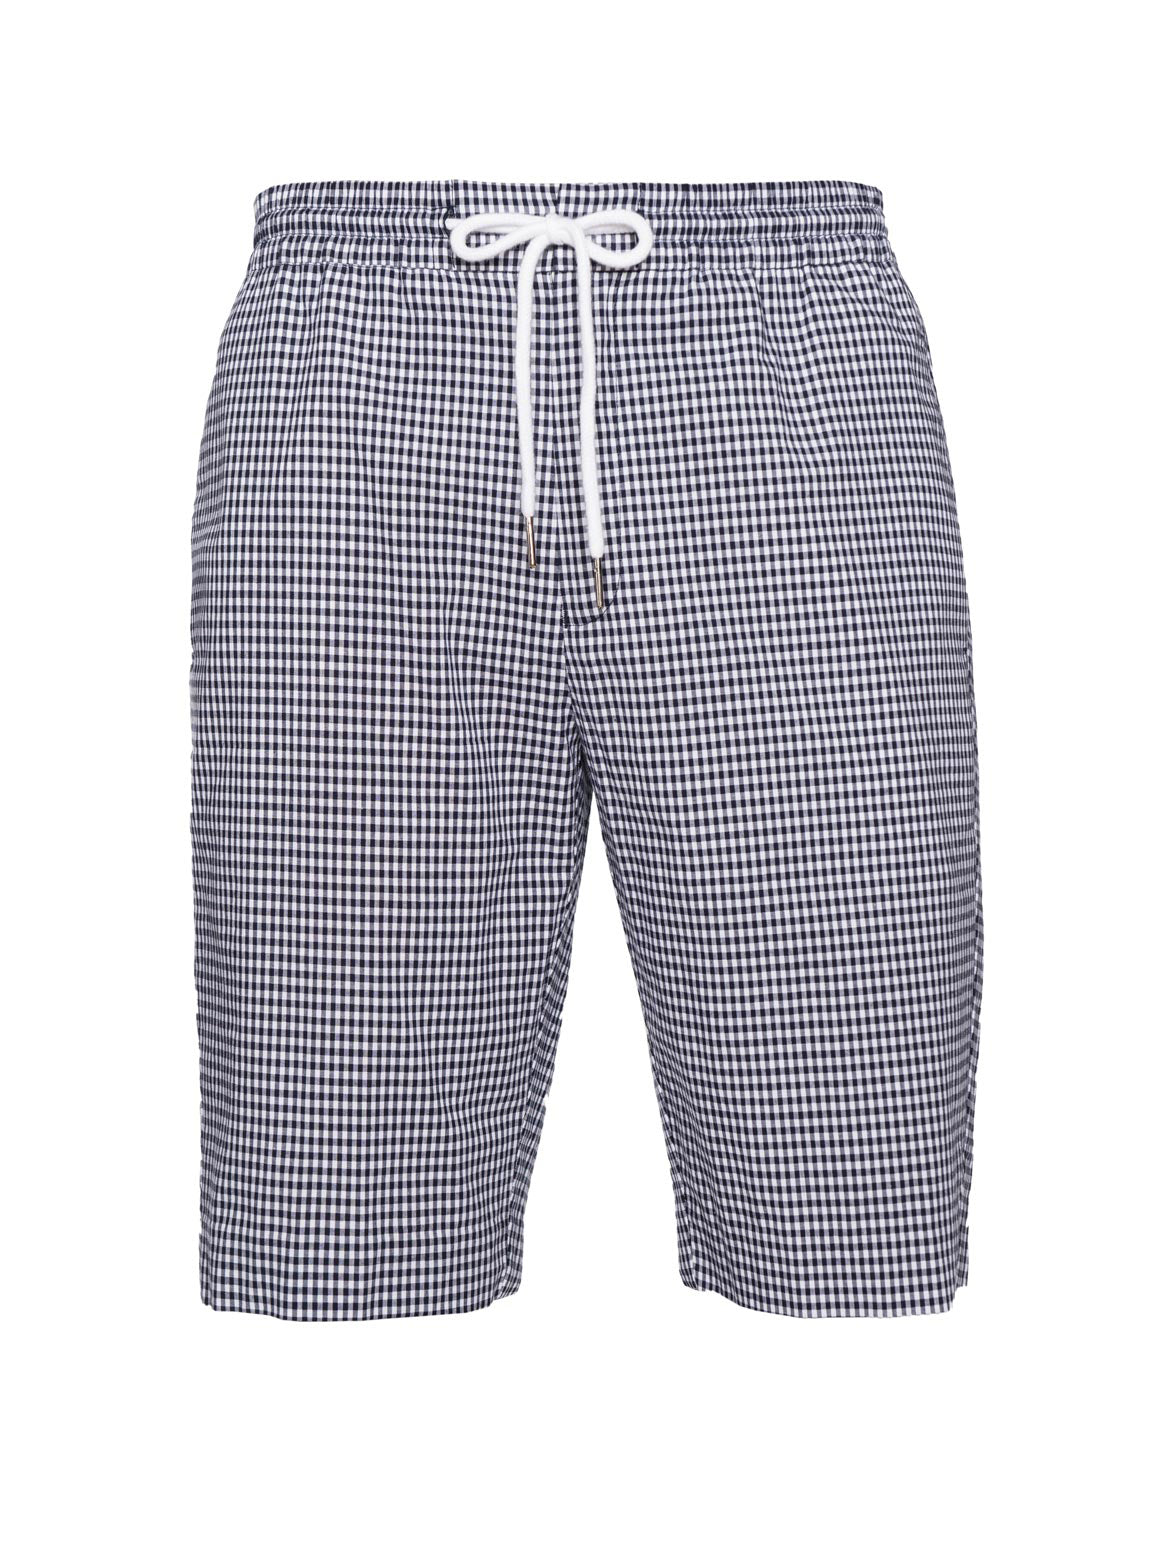 paisley & gray navy gingham slim fit jogger short 2151S